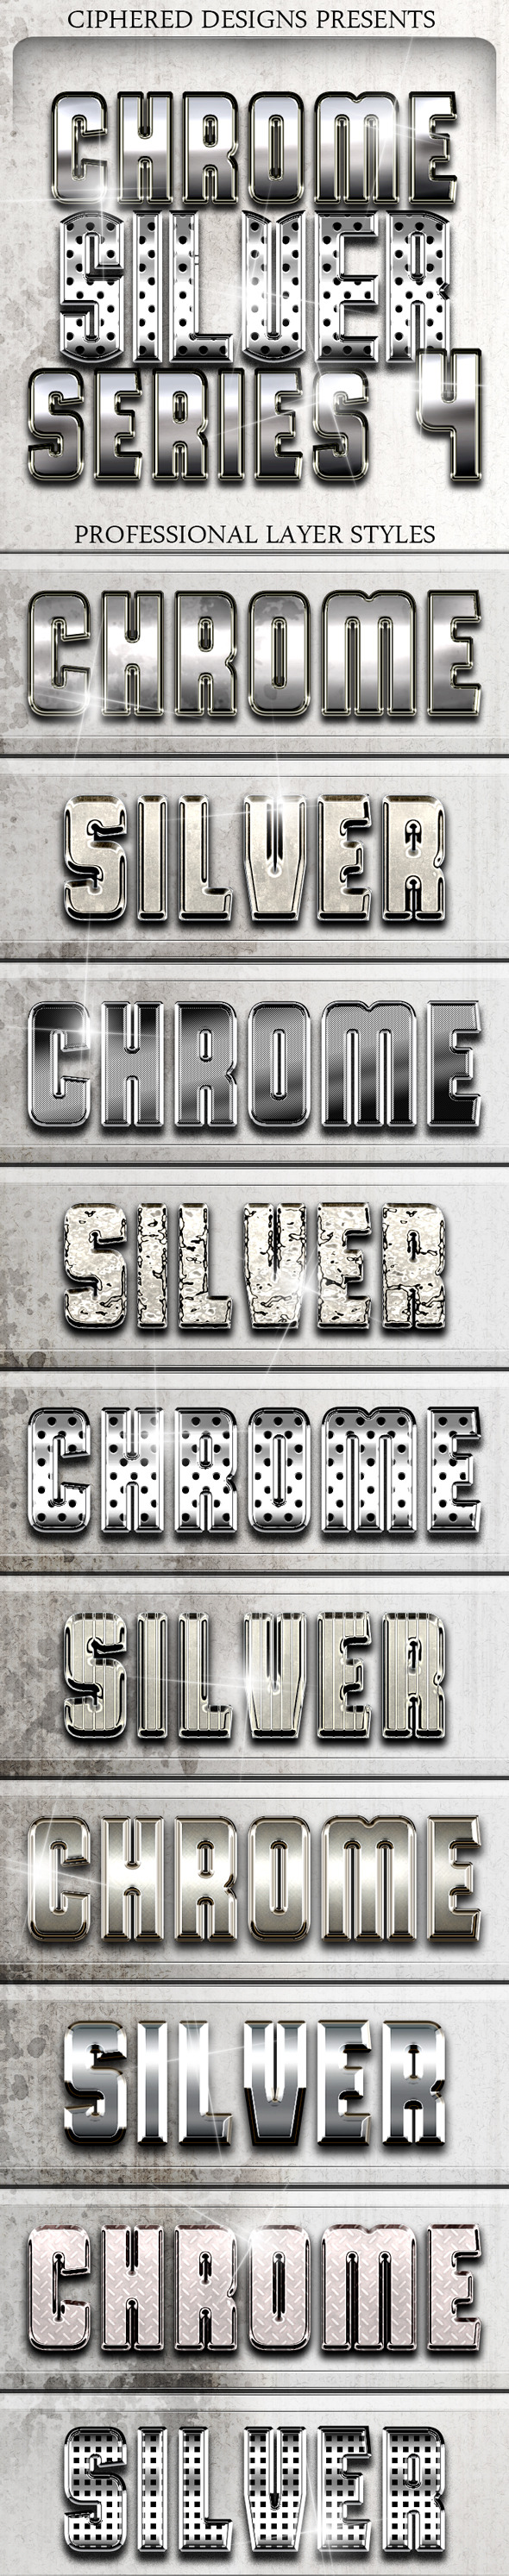 Chrome & Silver Series 4 - Pro Text Effects